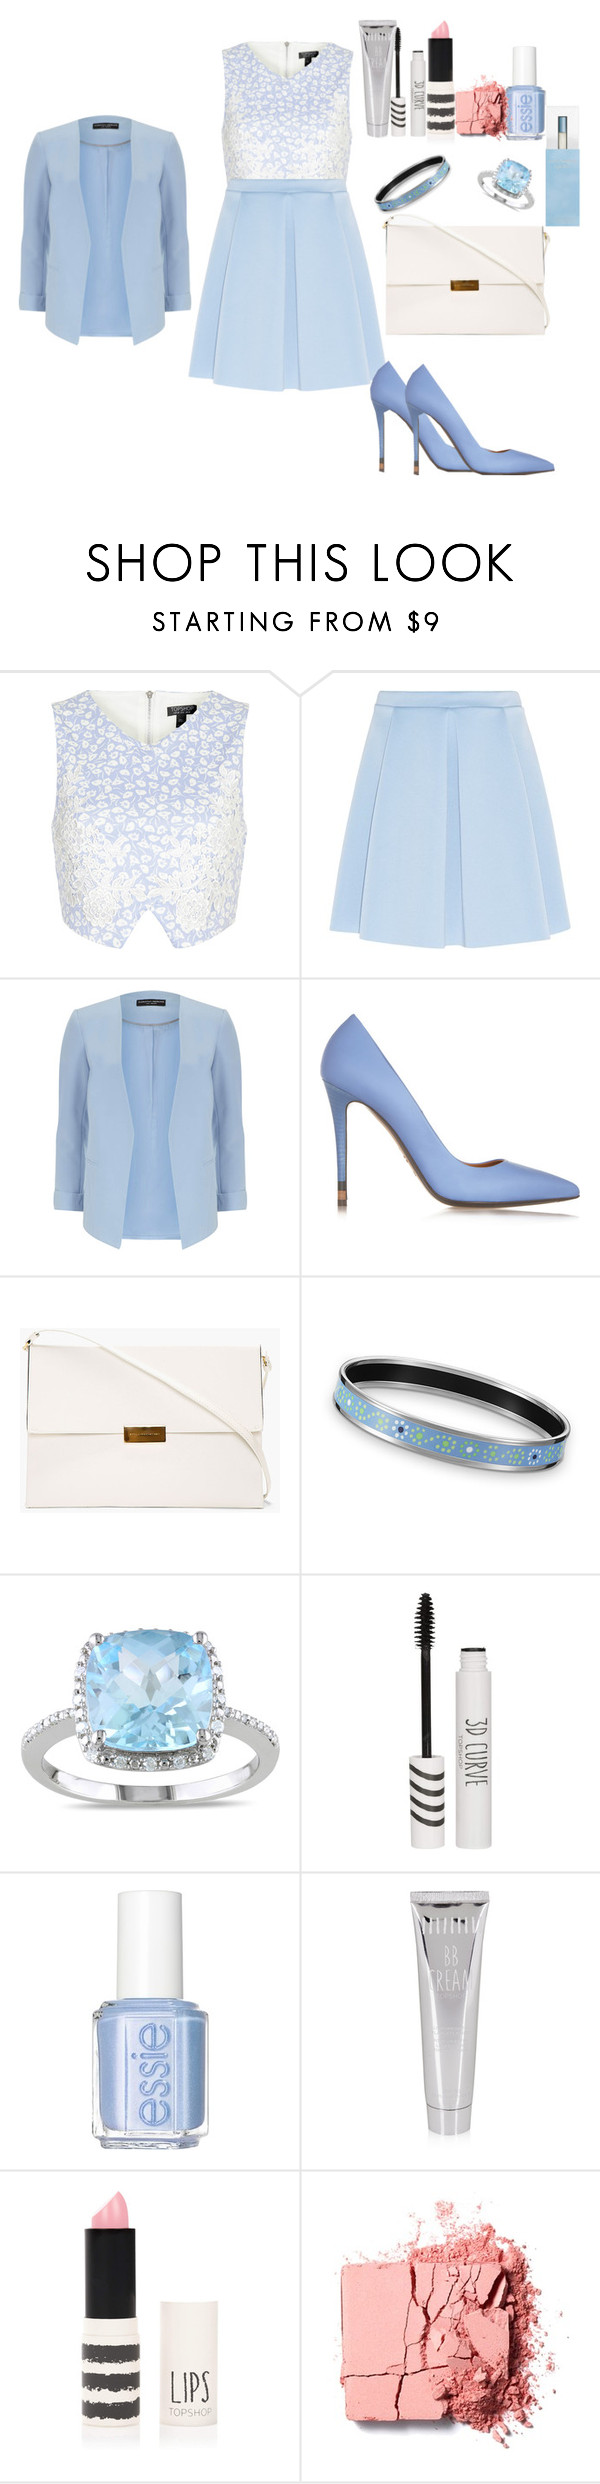 """Friday Night Out!"" by fabuliciousfi ❤ liked on Polyvore featuring Topshop, Dorothy Perkins, Fendi, STELLA McCARTNEY, Miadora, Essie, Benefit and Dolce&Gabbana"